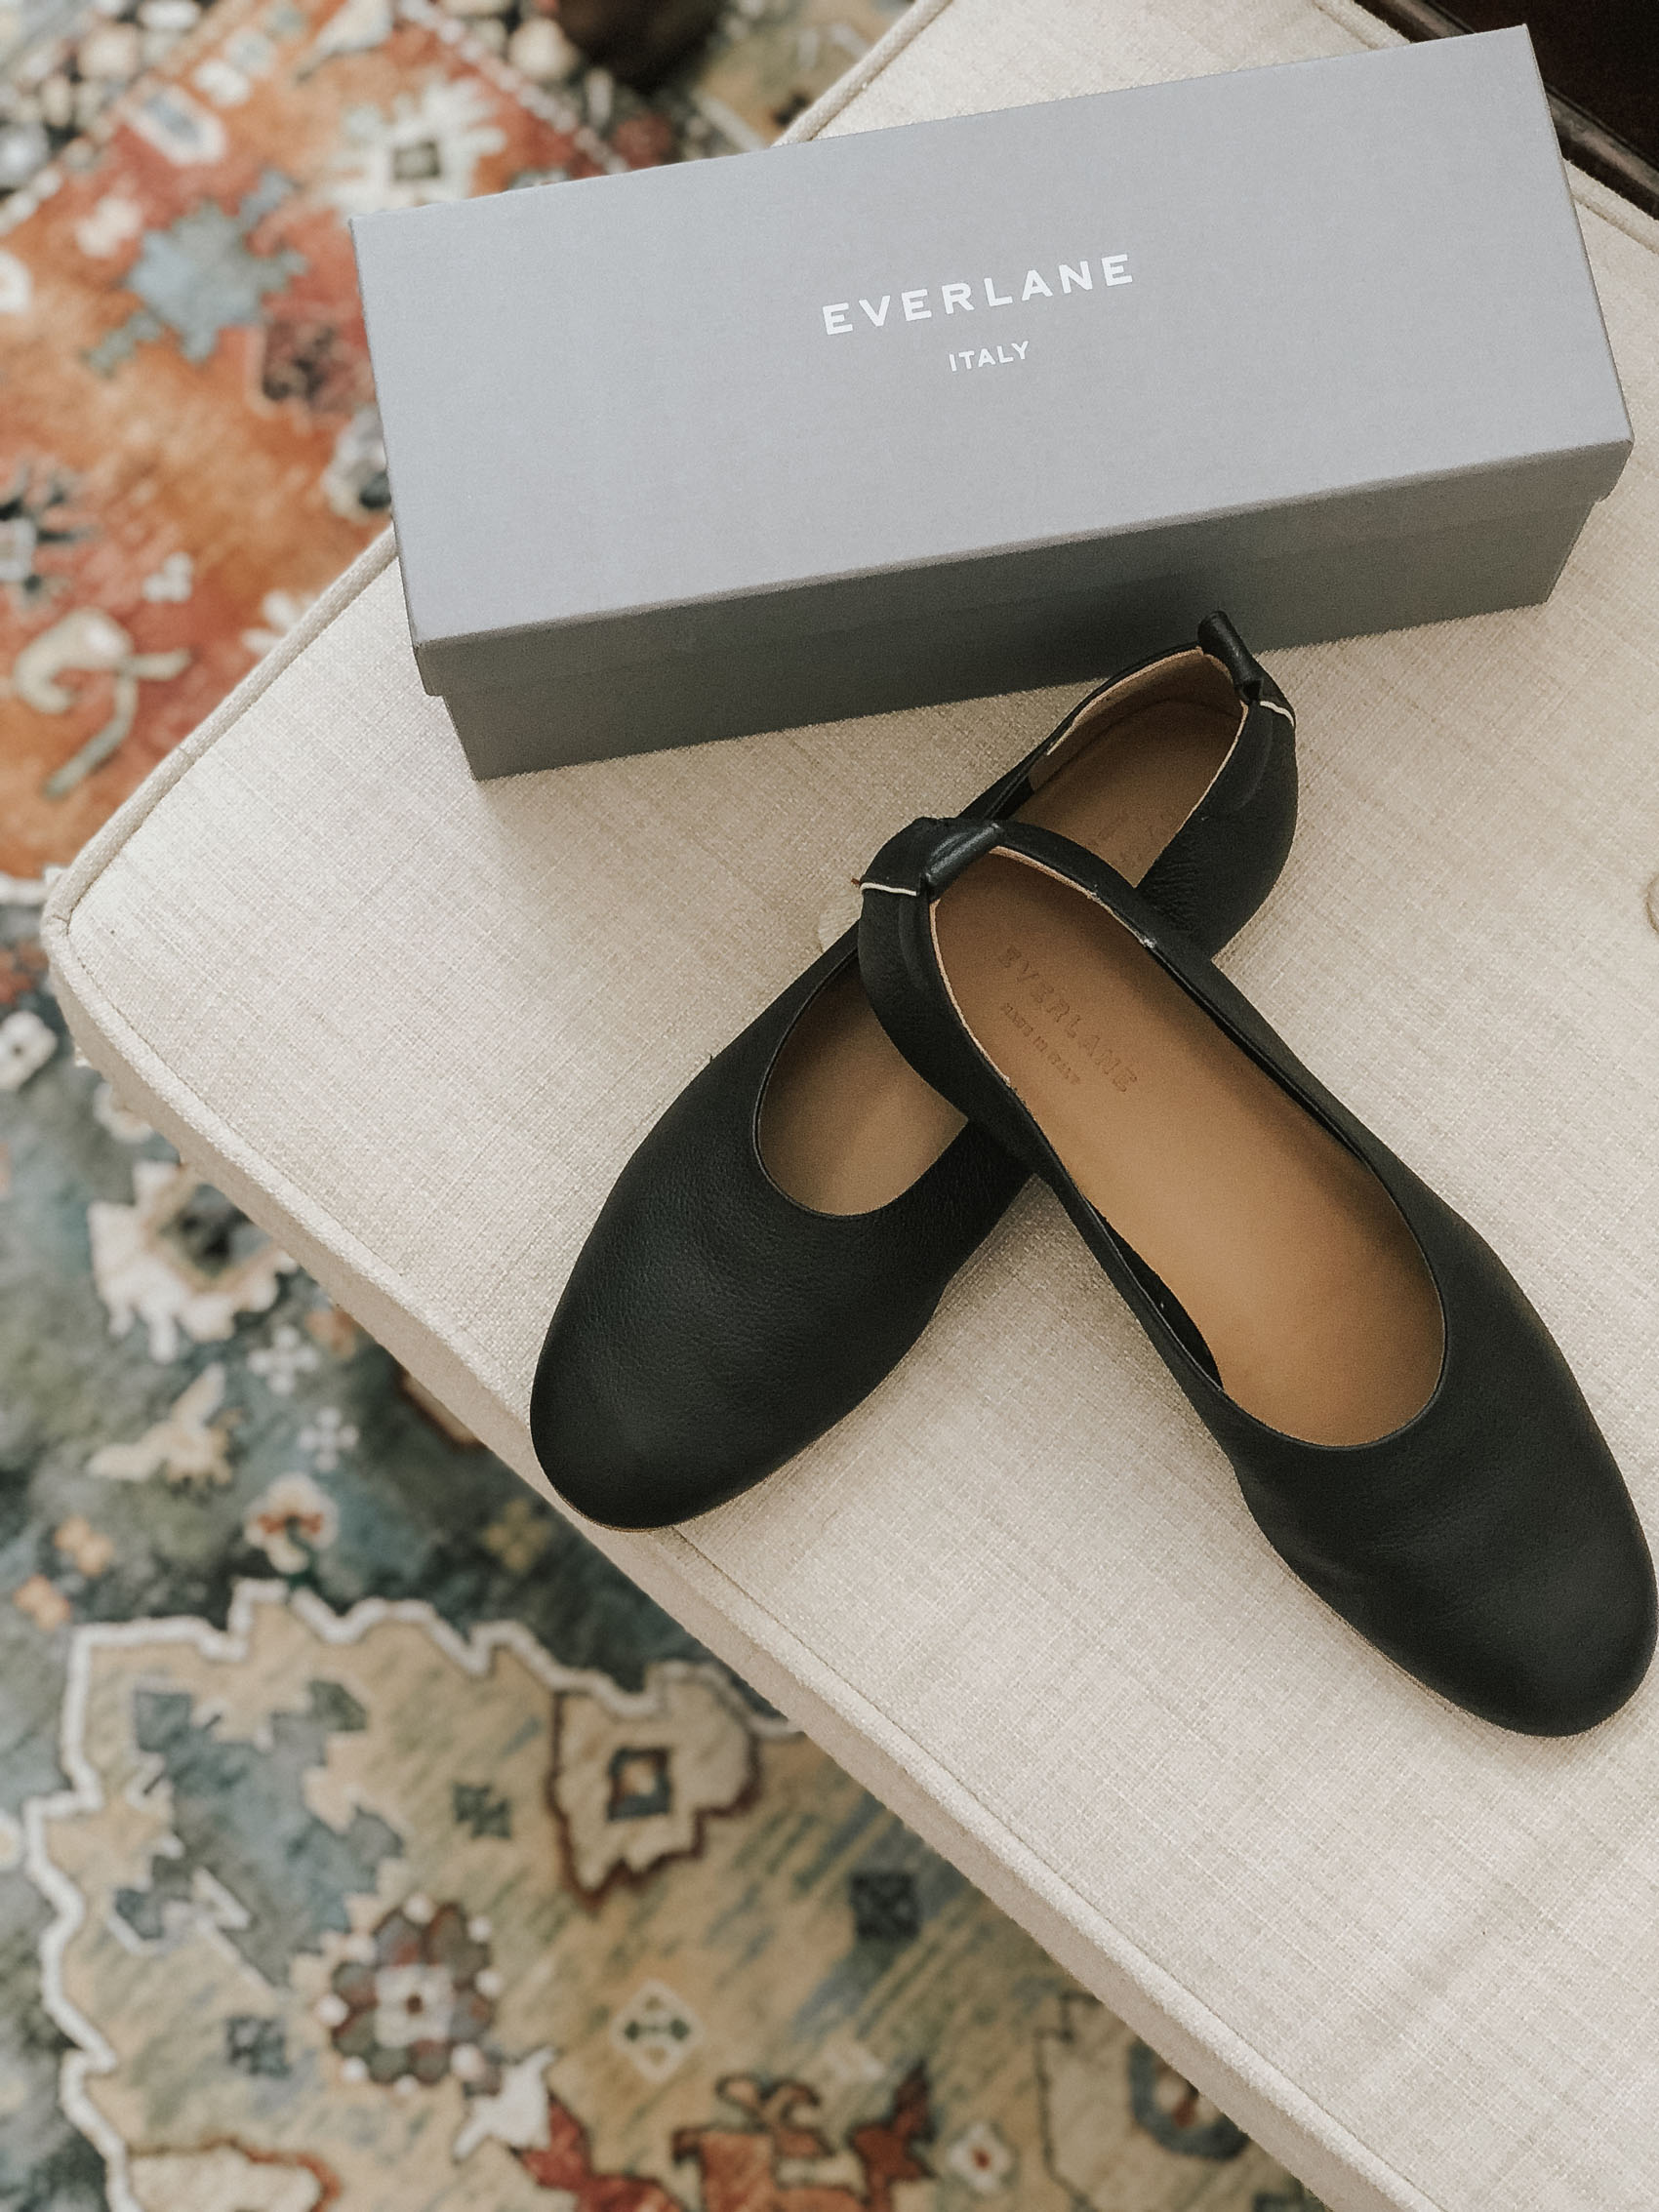 Everlane Shoe Review